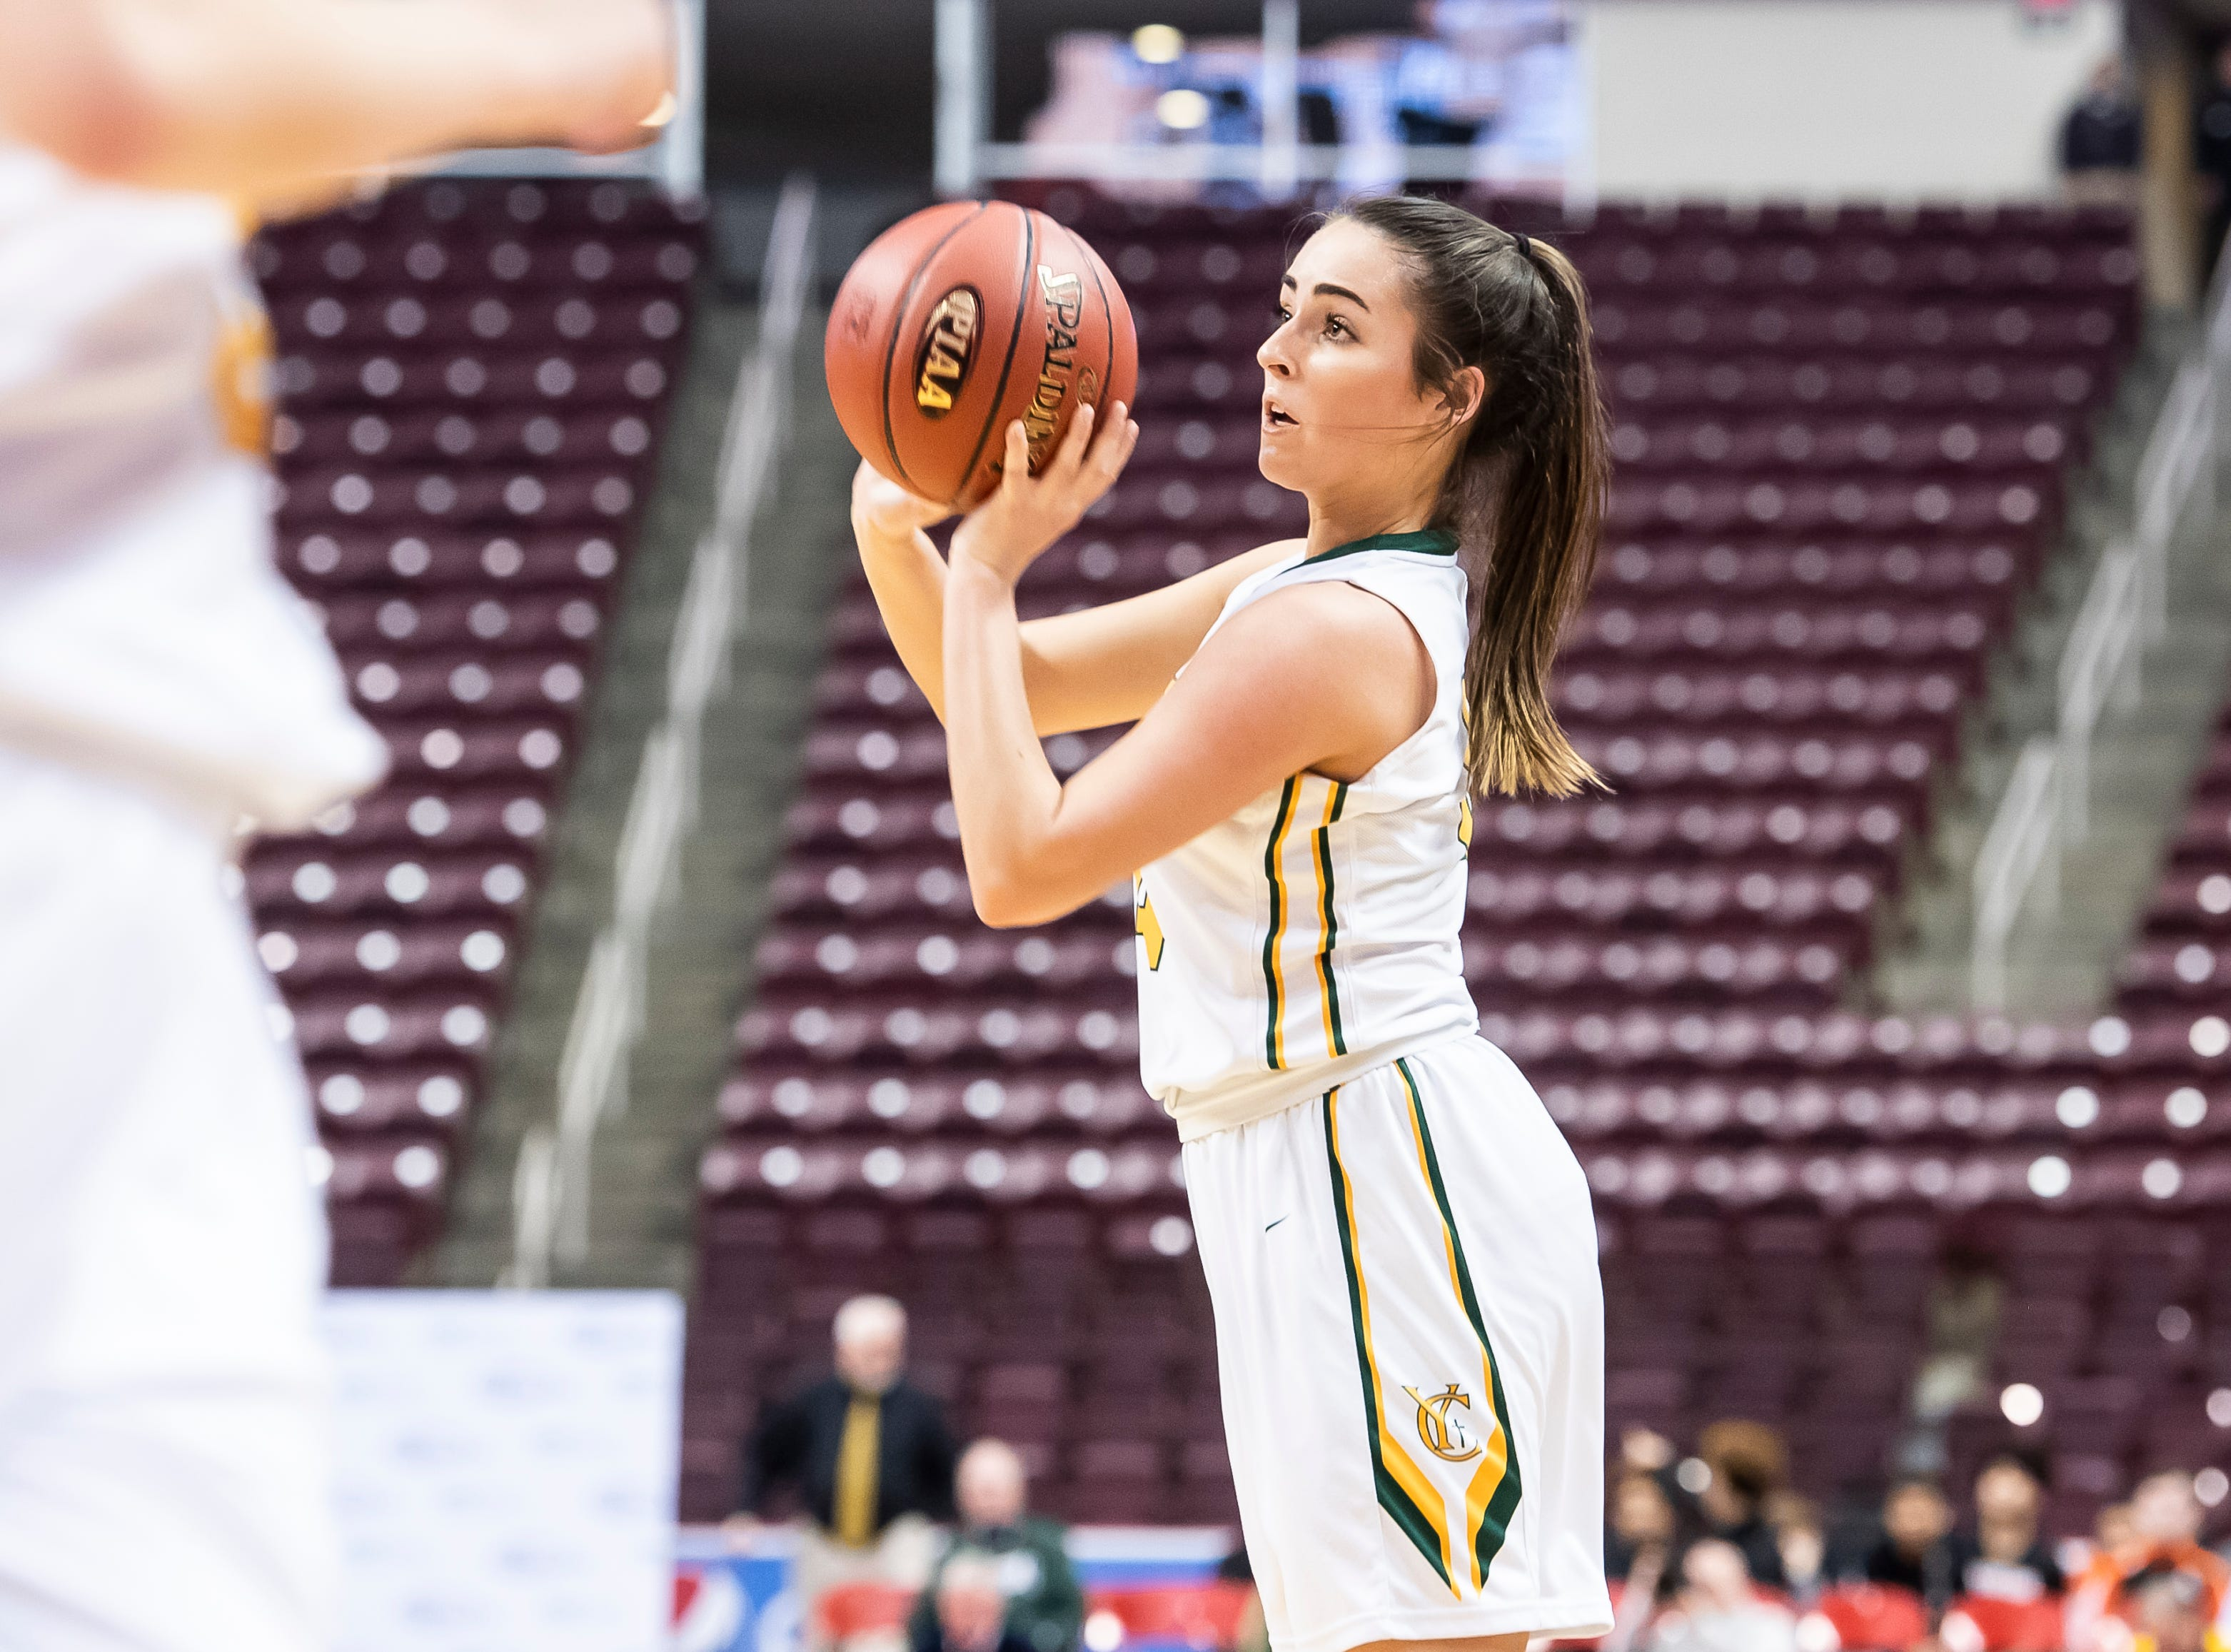 York Catholic's Gina Citrone pulls up on a jump shot during the District 3 2-A girls championship game against Linden Hall at the Giant Center in Hershey Tuesday, Feb. 26, 2019. The Fighting Irish fell 56-27.